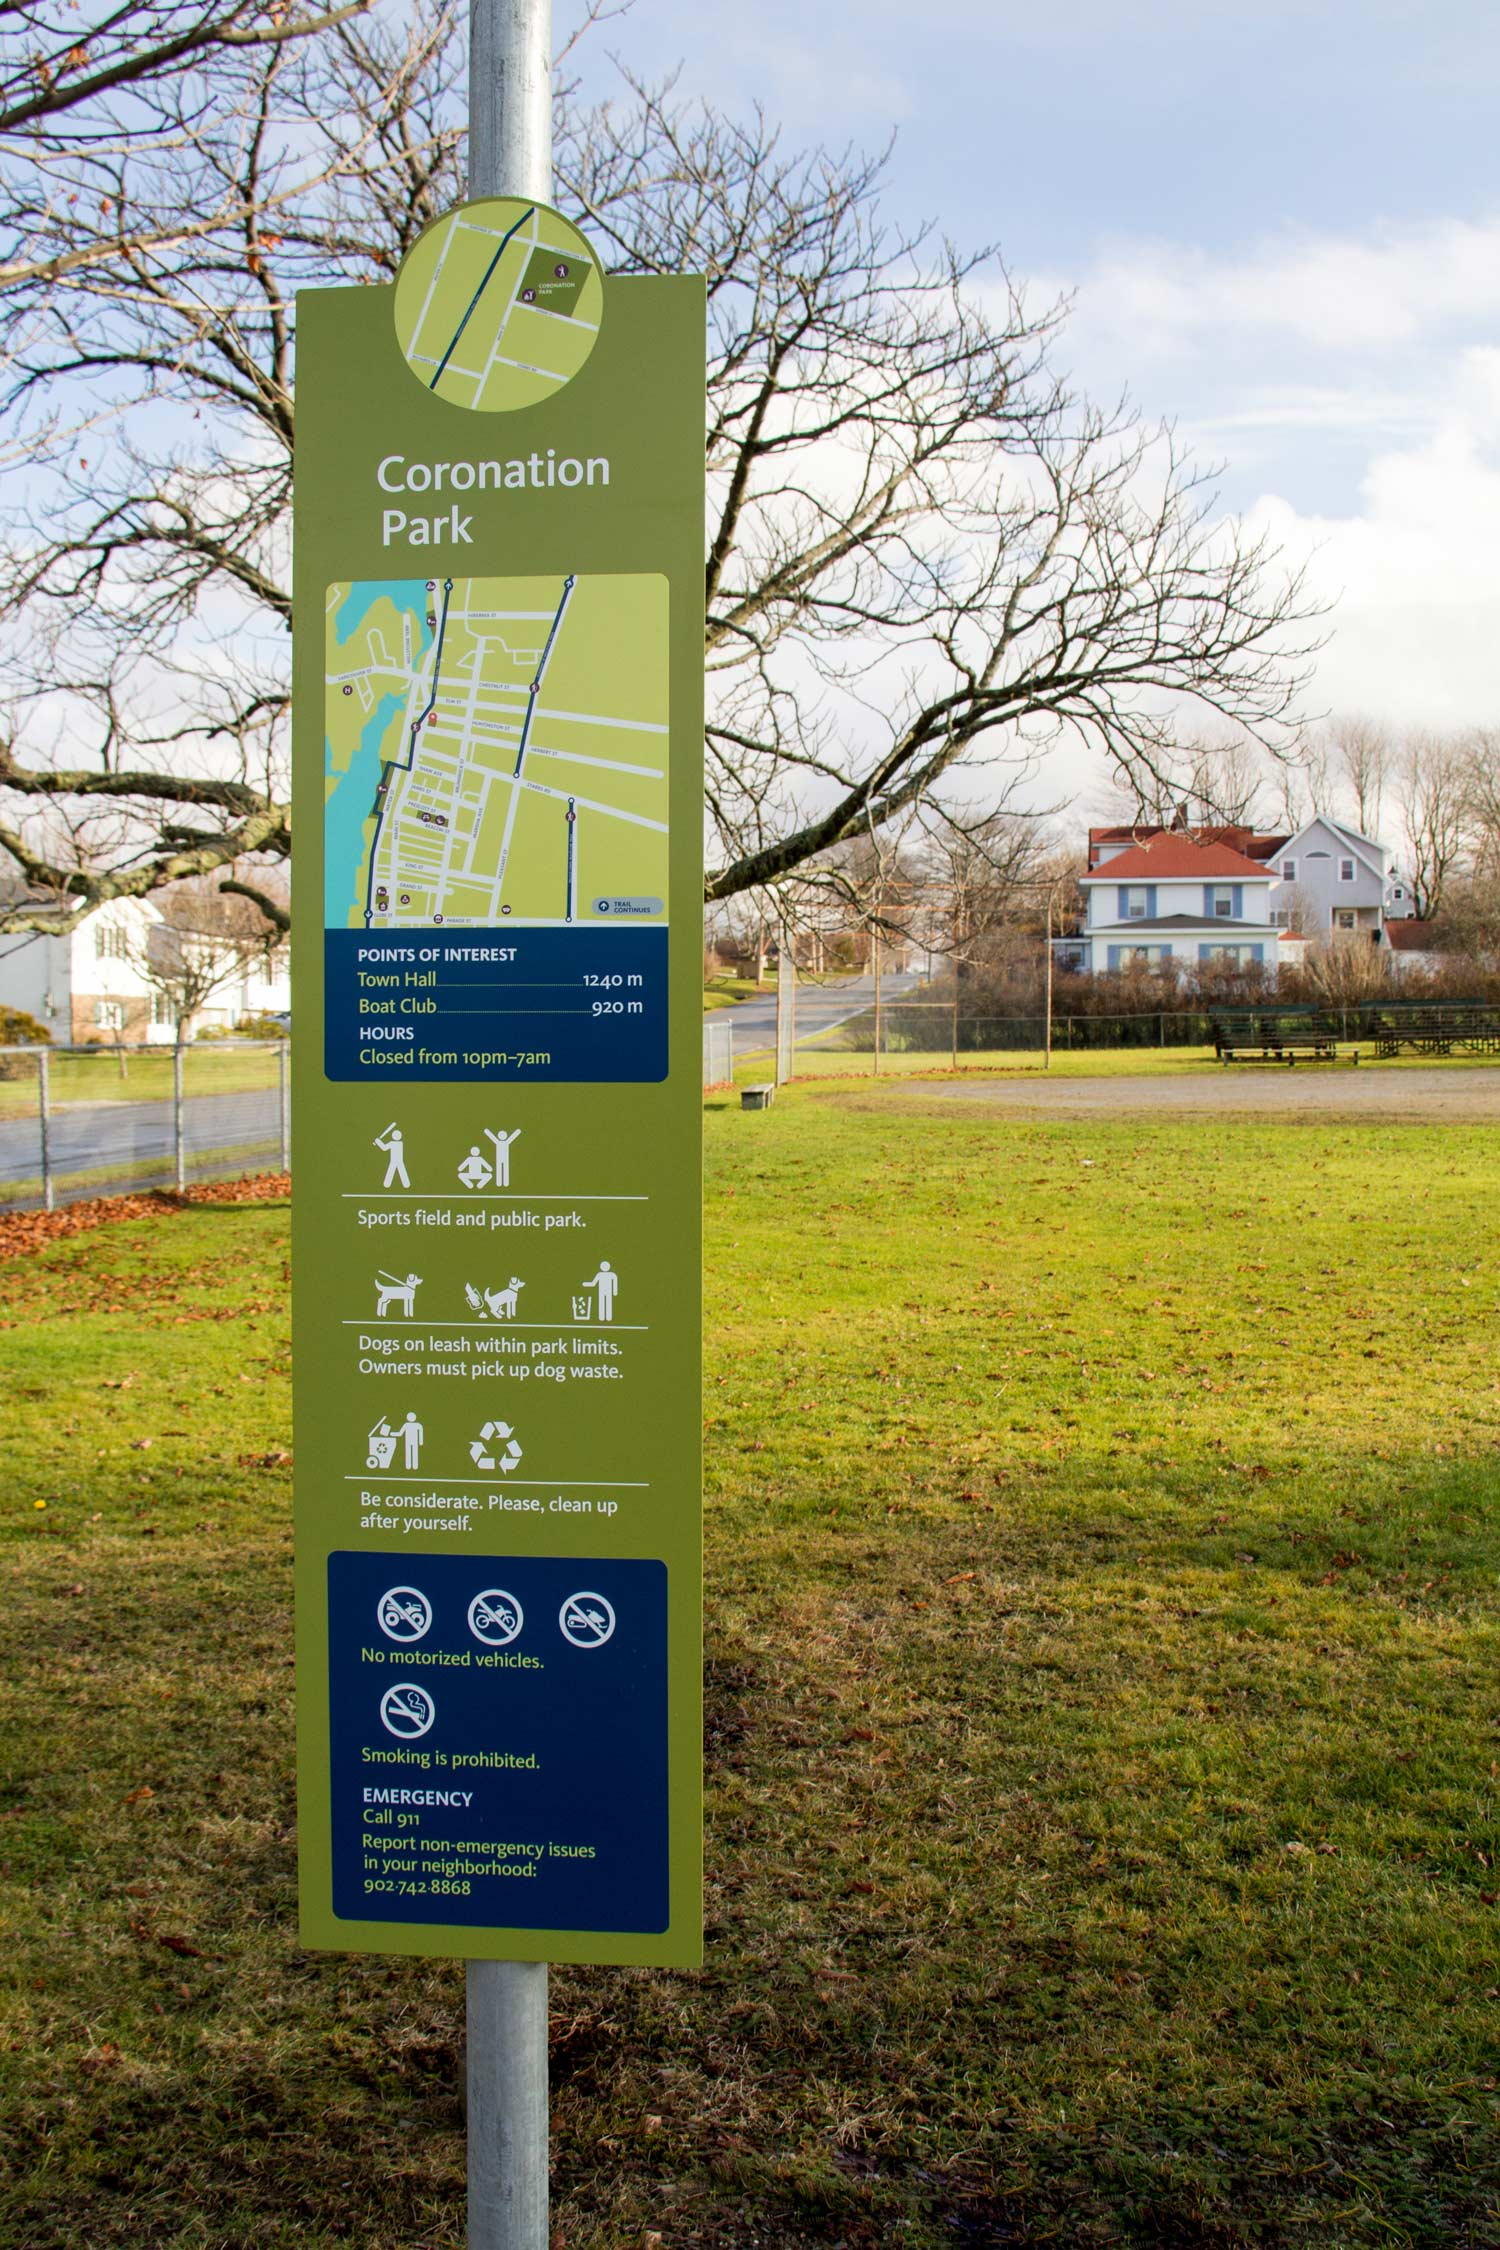 PARK INFORMATION All parks now come equipped with signs indicating proper behaviour, as well as points of interest in the area.